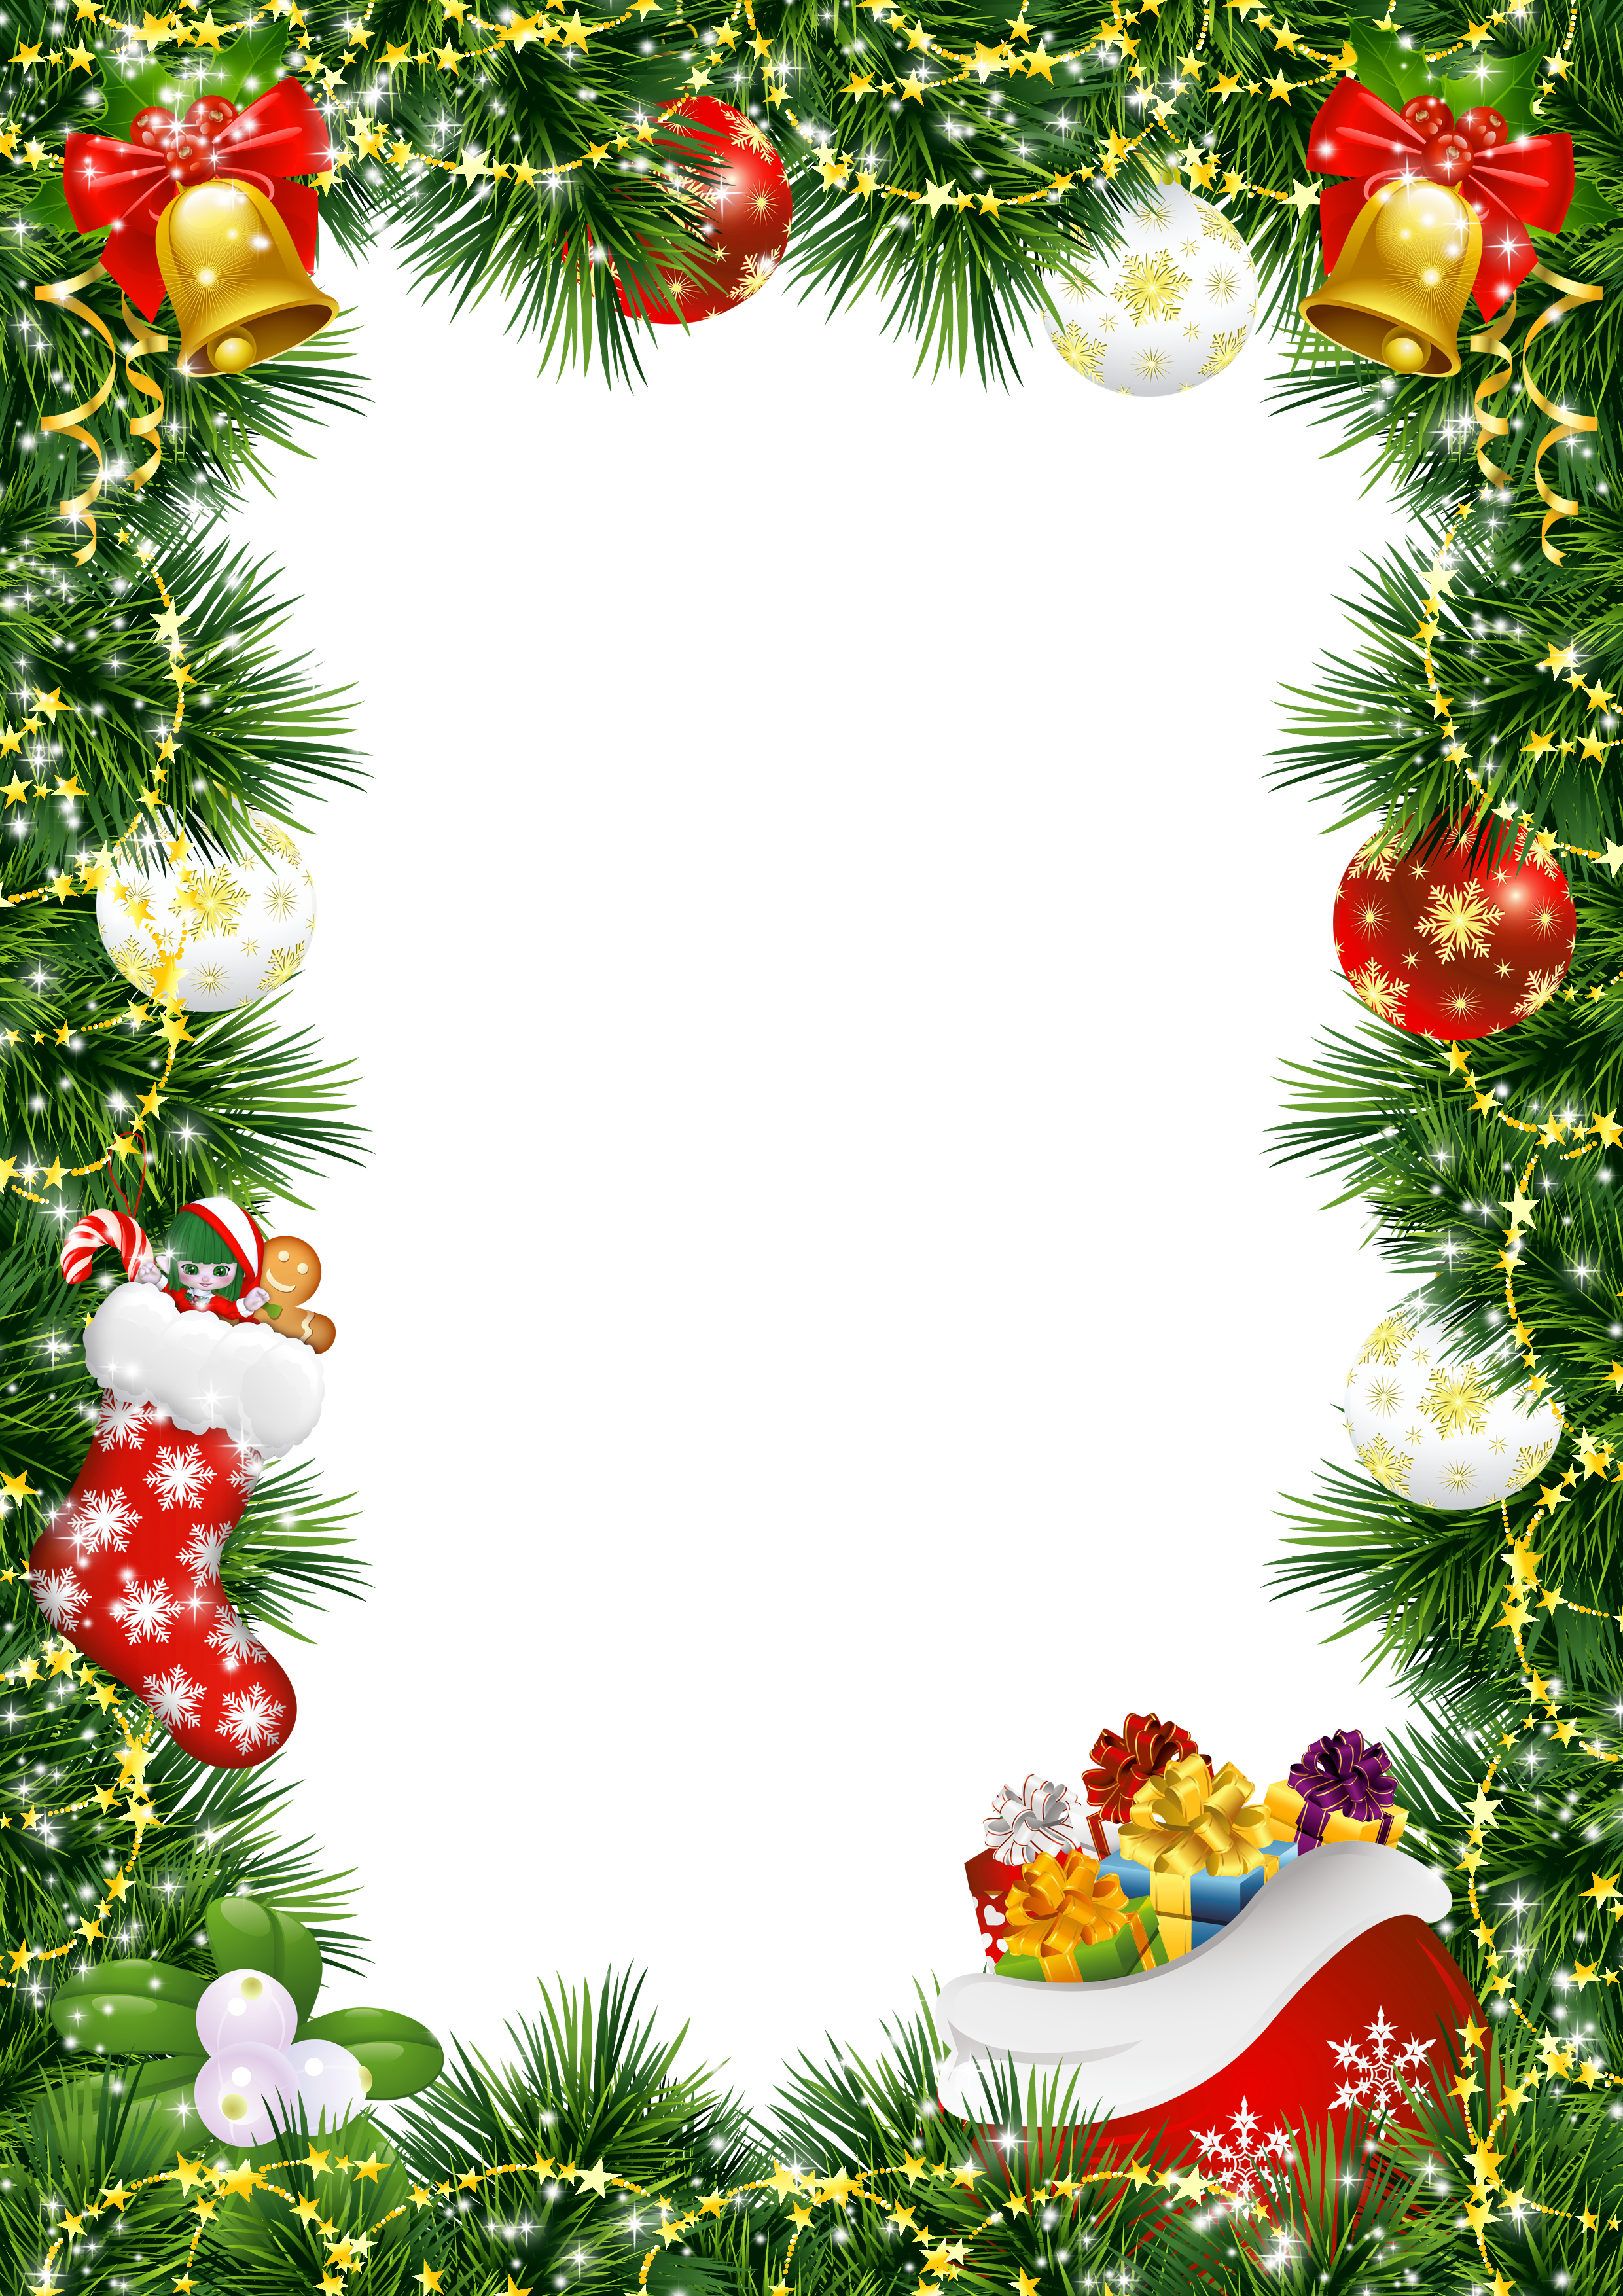 Christmas ornaments border png. Pin by amhouse on